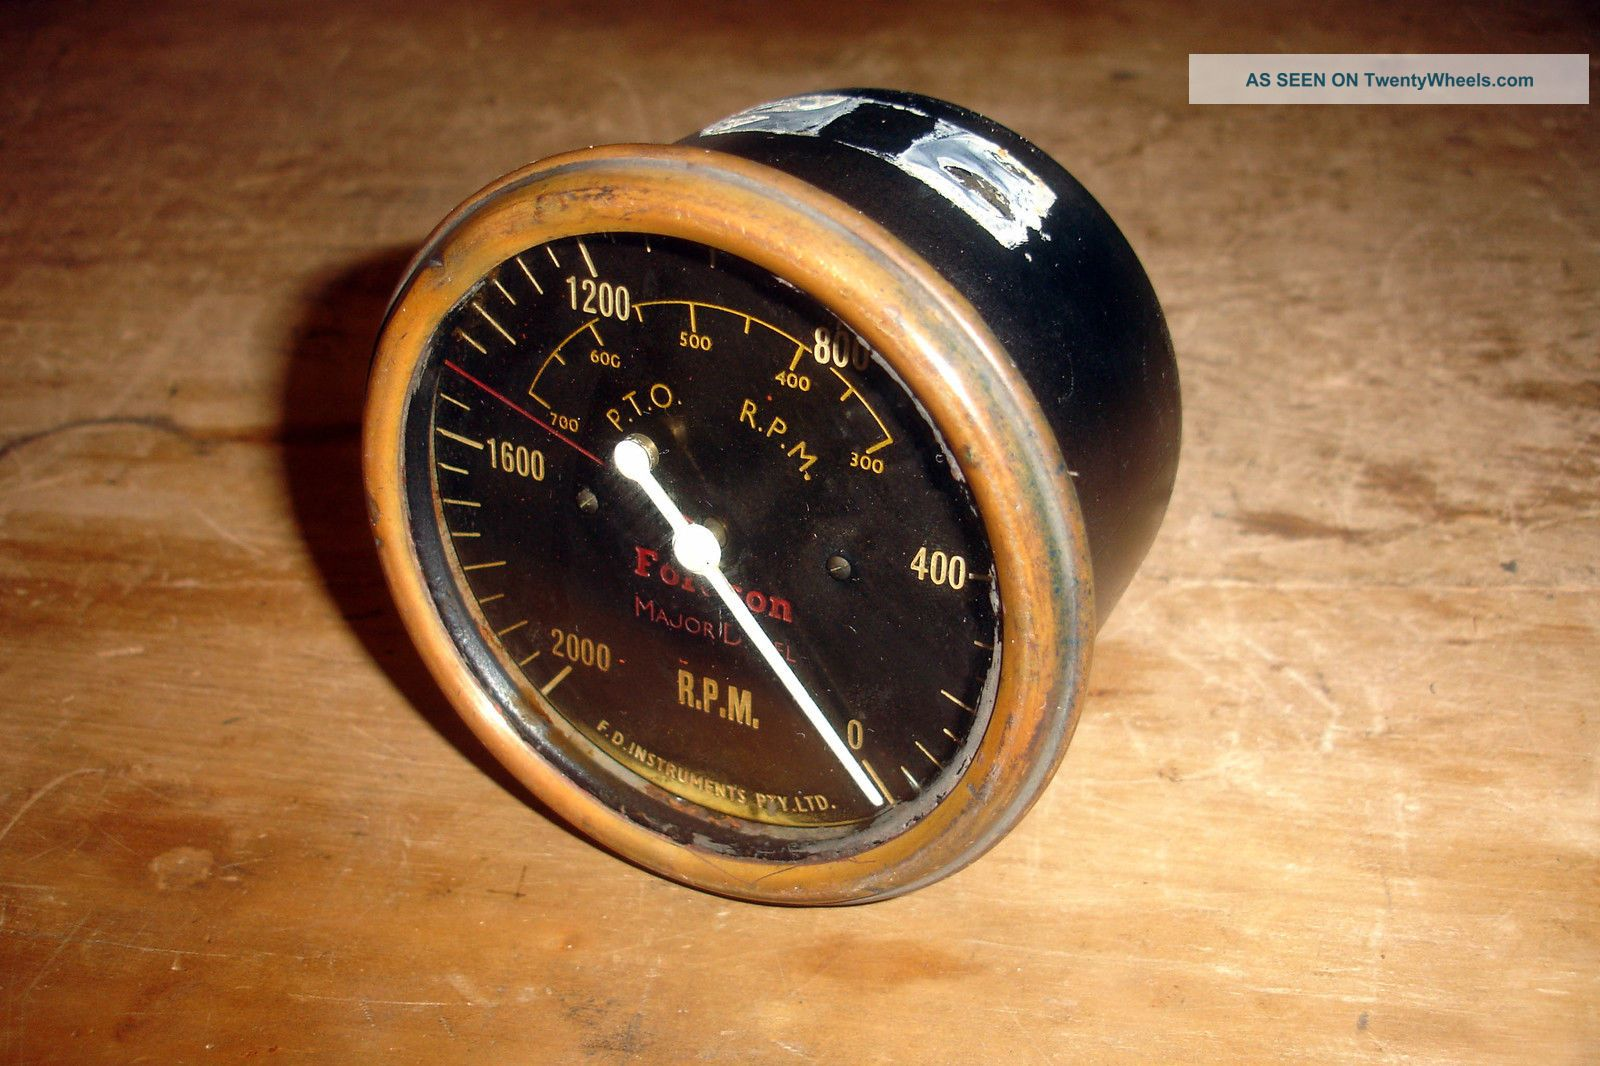 Fordson E27n P6 Perkins Diesel Major Tractor Tacho Tachometer County Crawler Uncategorized photo